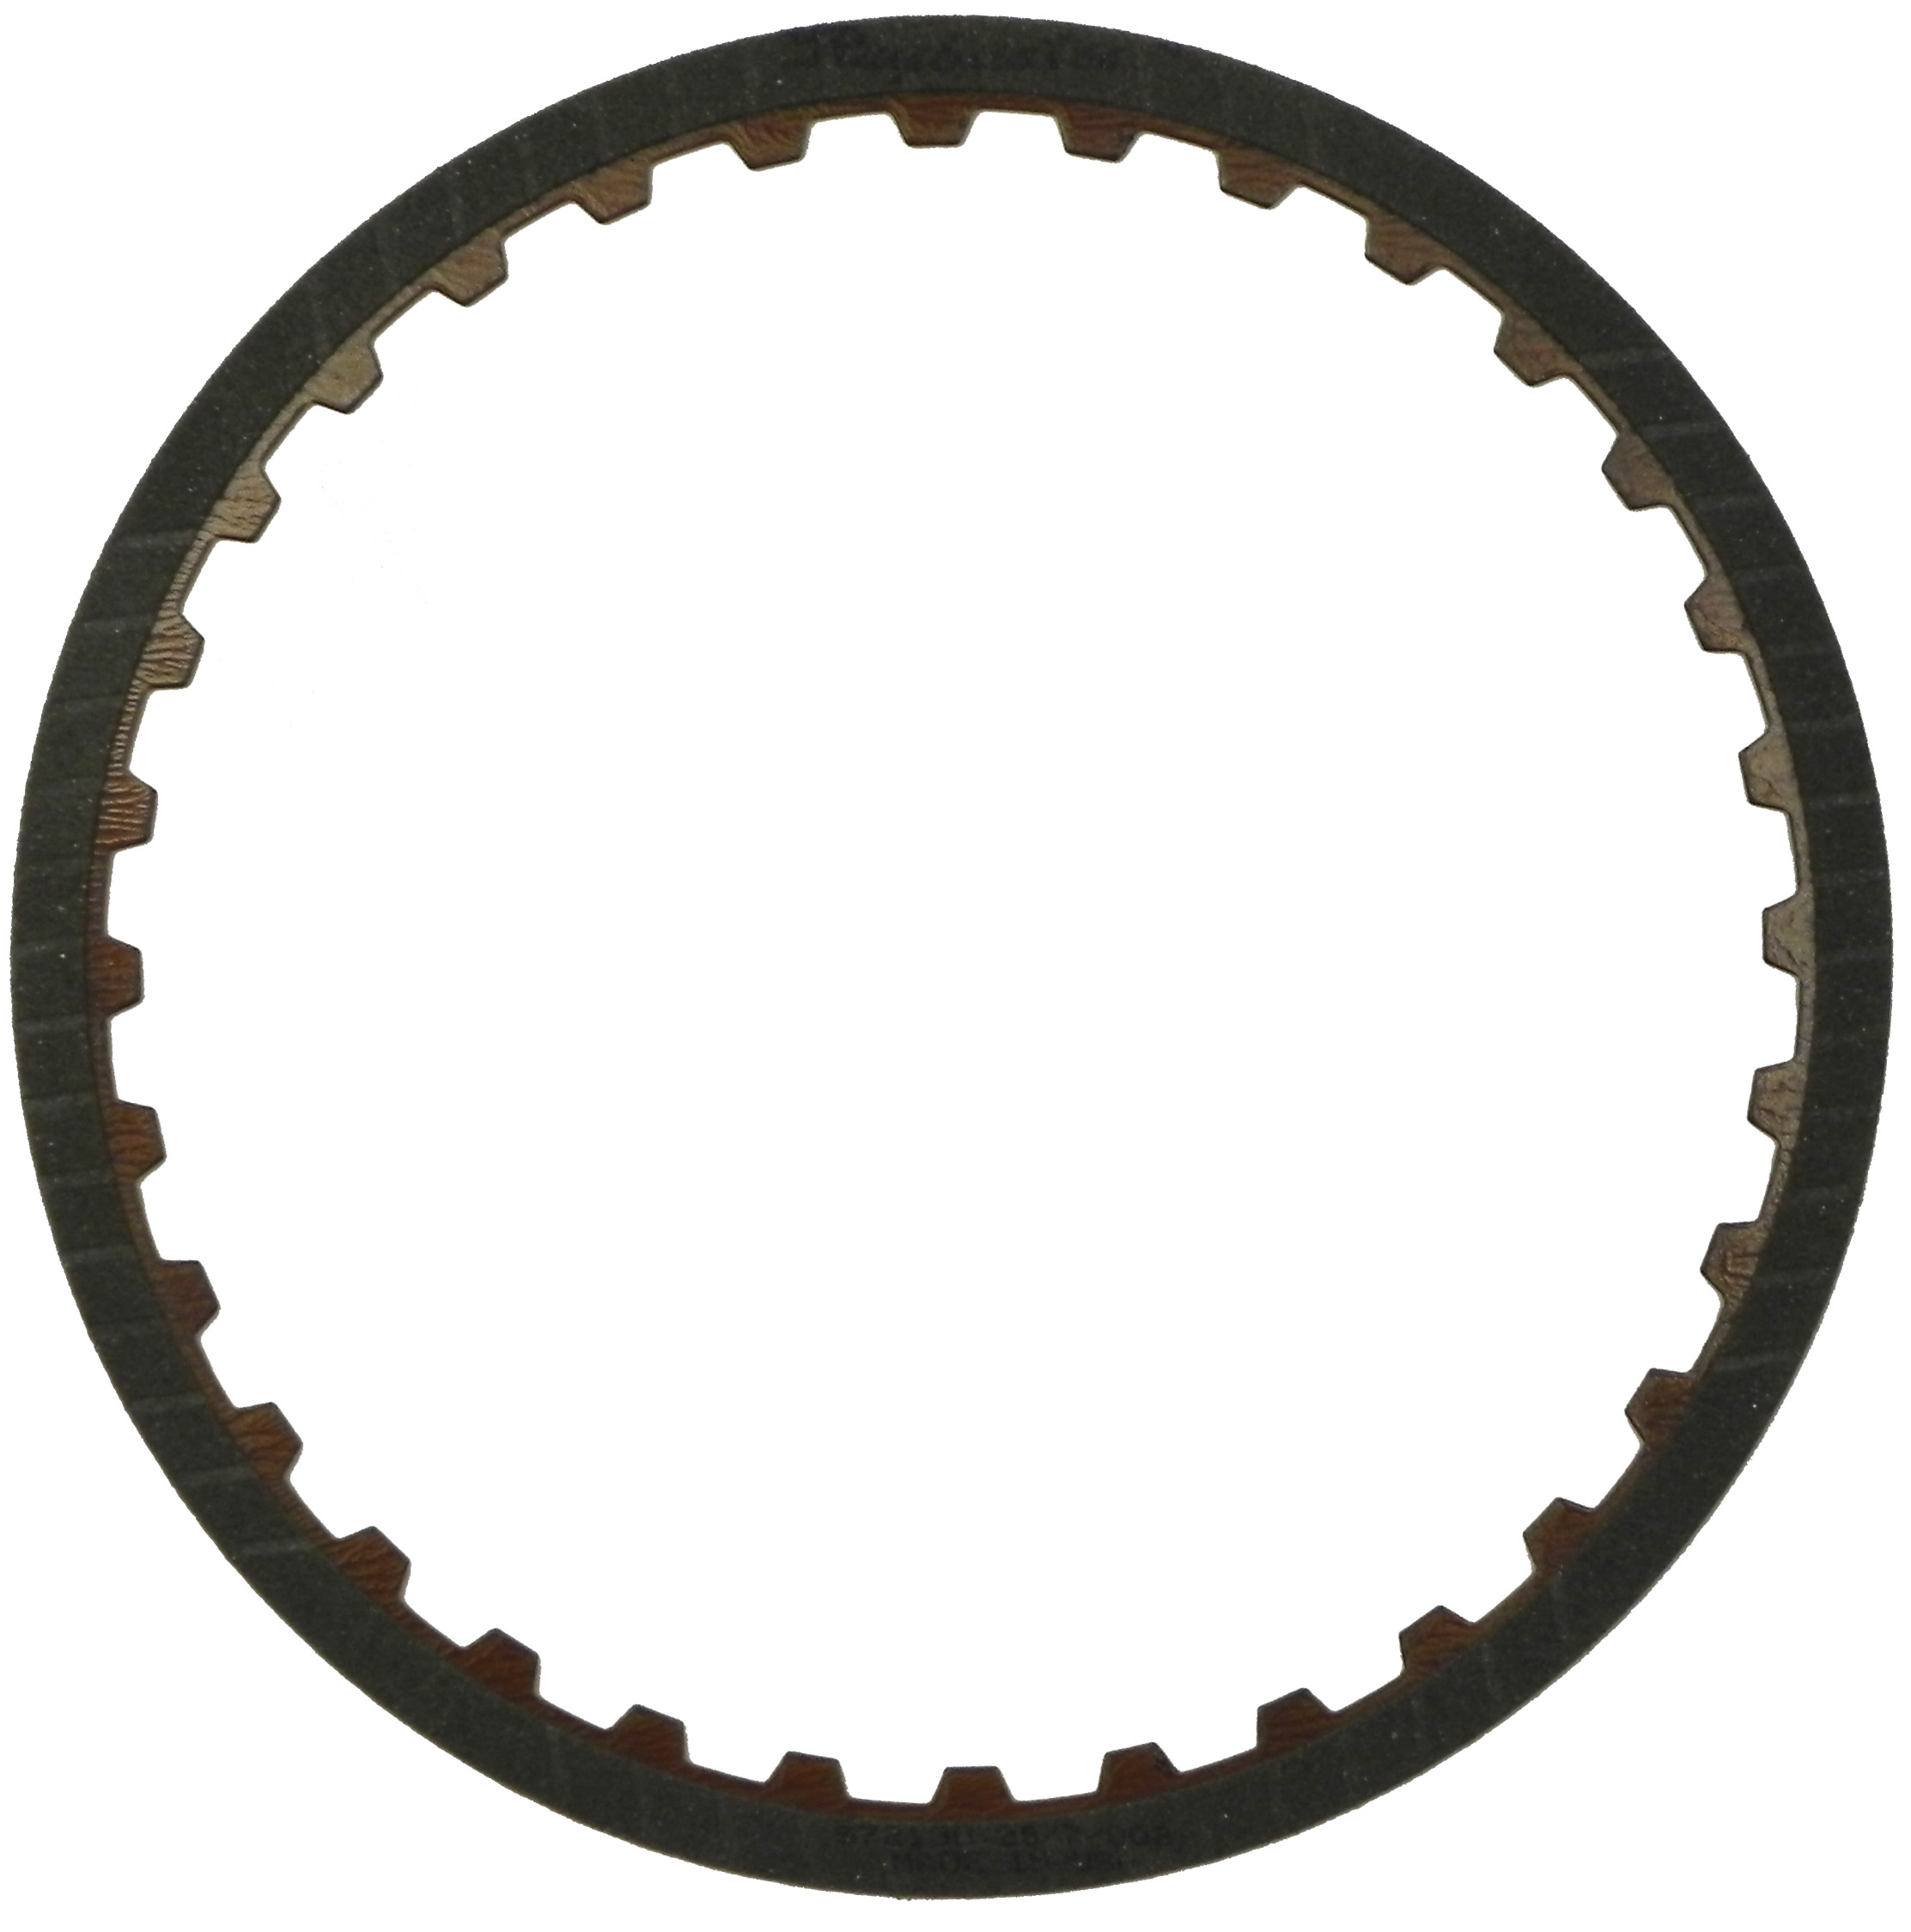 R572130 | 1995-ON Friction Clutch Plate High Energy Forward High Energy